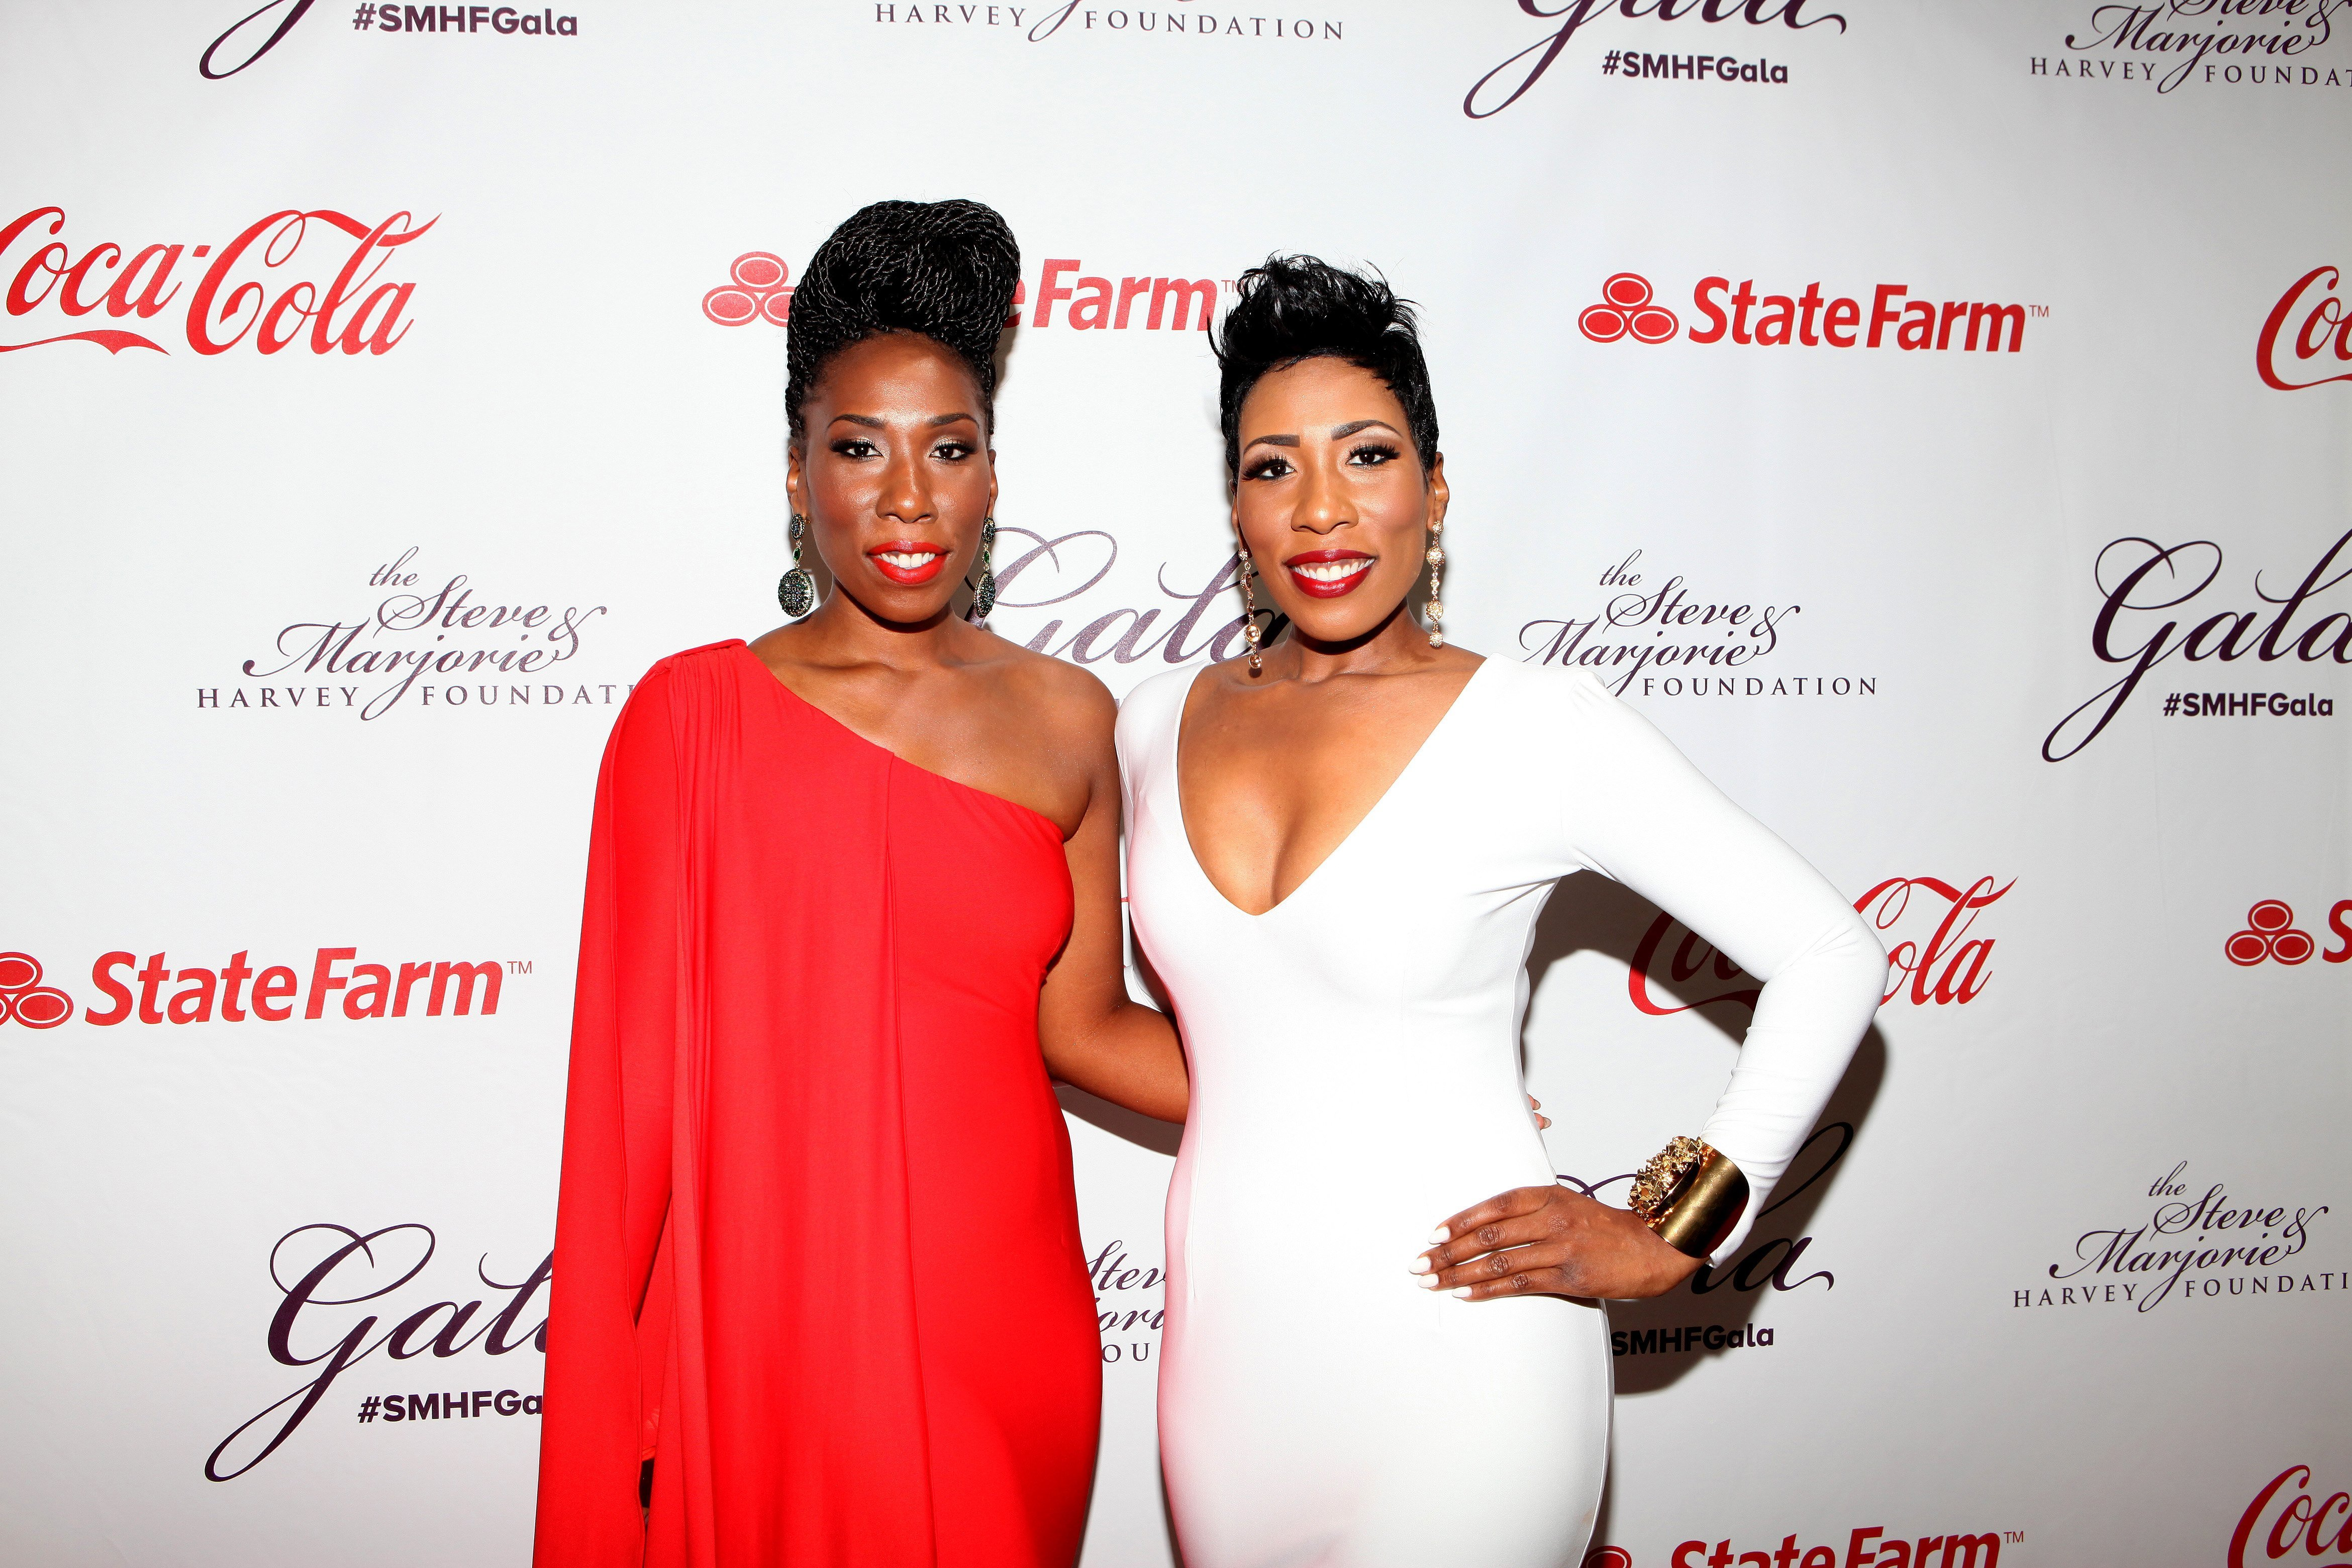 Brandi and Karli Harvey attend the 2014 Steve and Marjorie Harvey Foundation Gala presented by Coca-Cola at the Hilton Chicago on May 3, 2014 in Chicago, Illinois | Photo: Getty Images